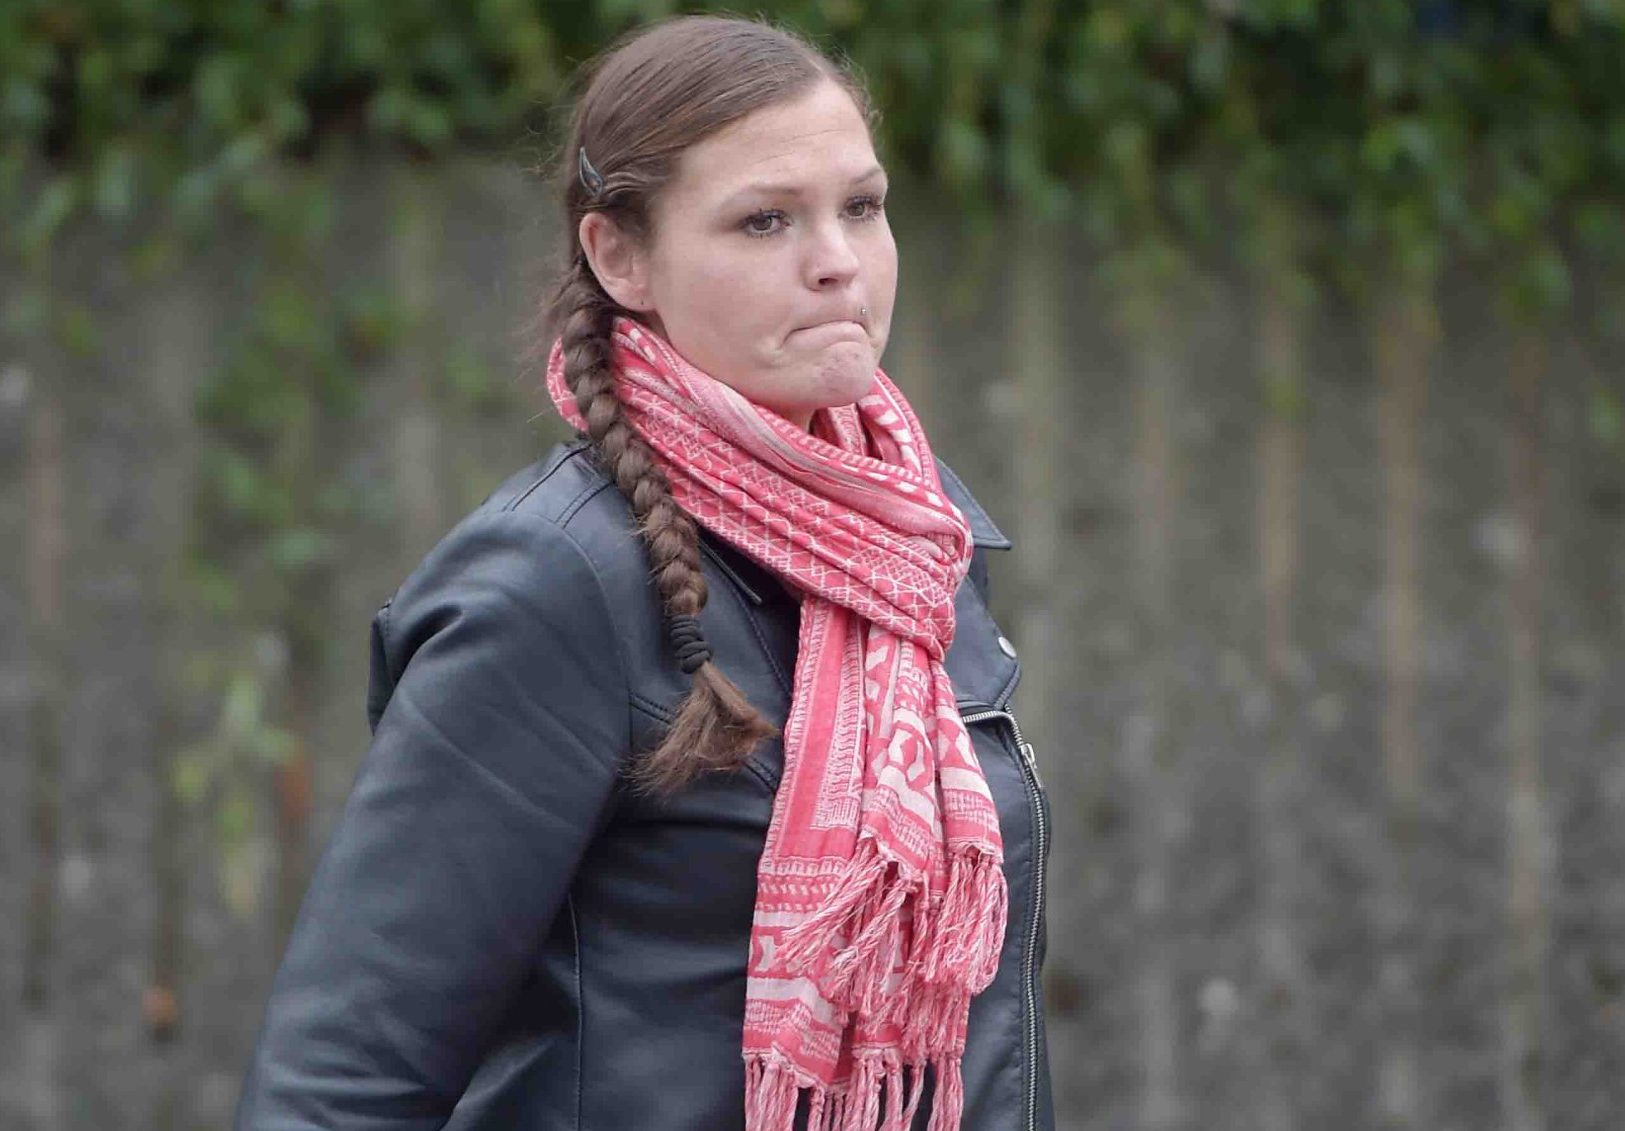 """A fraudster swindled a kind 88-year-old man out of his ?32,000 life savings with a """"saga"""" of hard luck stories - including the fake death of a friend in a car crash. Jade Kilvington, 33, took advantage of the pensioner's good nature as she slowly drained his bank account with constant pestering for cash. The elderly victim said she was so convincing as she tugged at his heartstrings, he thought she would """"probably make a good actress"""". The money she scammed out of him in the """"despicable"""" con went to fund her heroin addiction and she now has nothing to show for it. Jade Kilvington, 33, of Elkington Walk, Netherfields, Middlesbrough, entered no plea to a fraud by false representation charge at Teesside Magistrates' Court"""